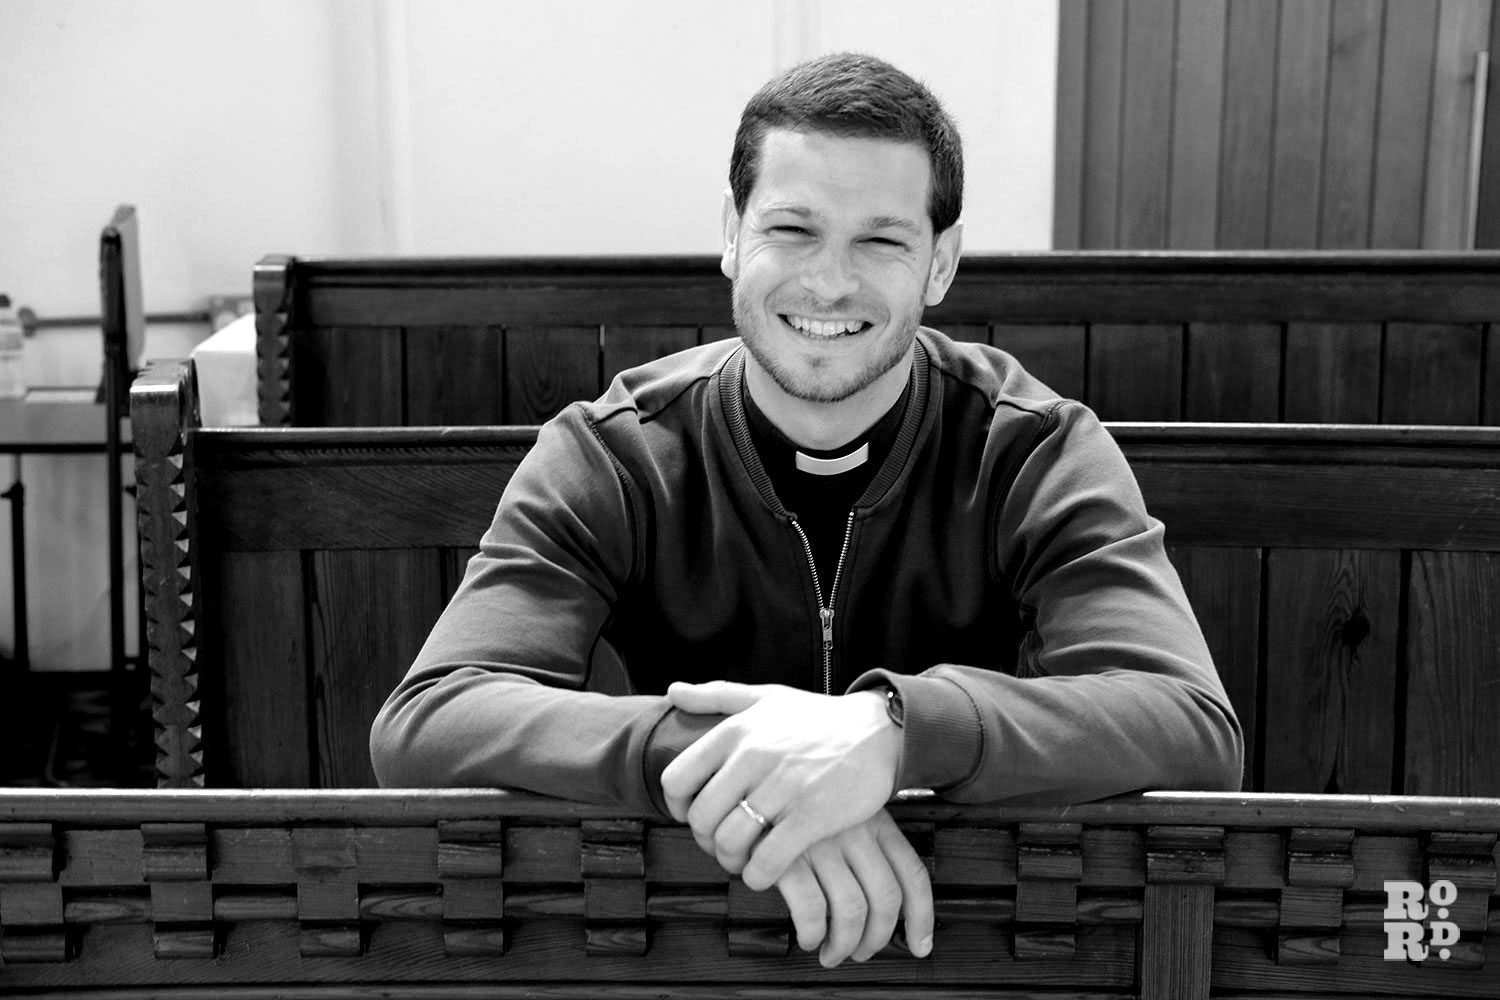 Reverend James Hughesdon in the pews at St Paul's Church, Old Ford, East London